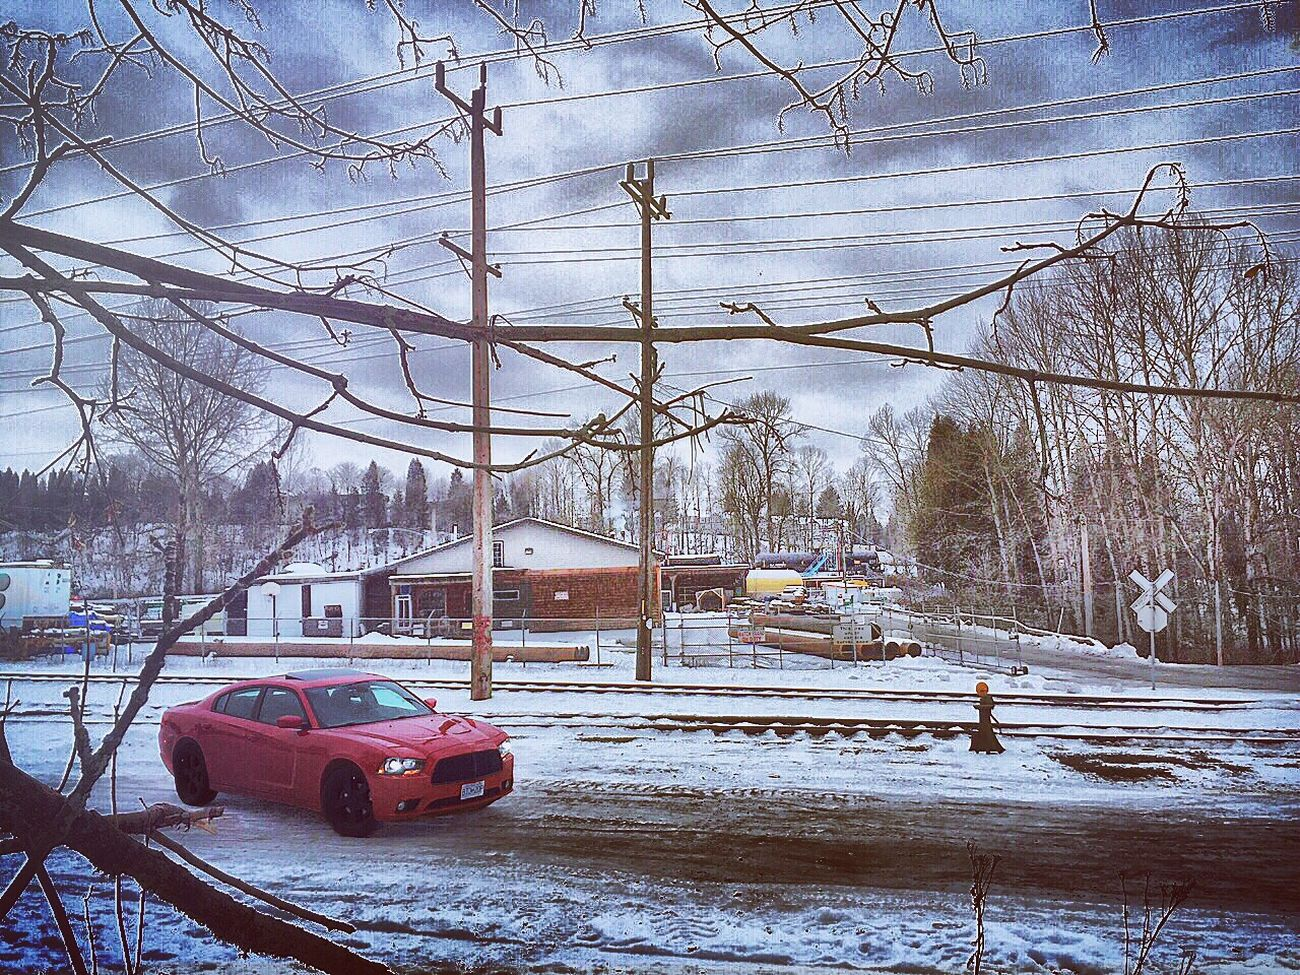 New to this app going to be a lot of of my car and nature hope you like 😬 Dodge Dodgecharger Charger Snow Picturetaking (null)Winter Cold Temperature Transportation Nature Sxt Rallye Mopar Moparornocar Car Tree Railroad First Eyeem Photo